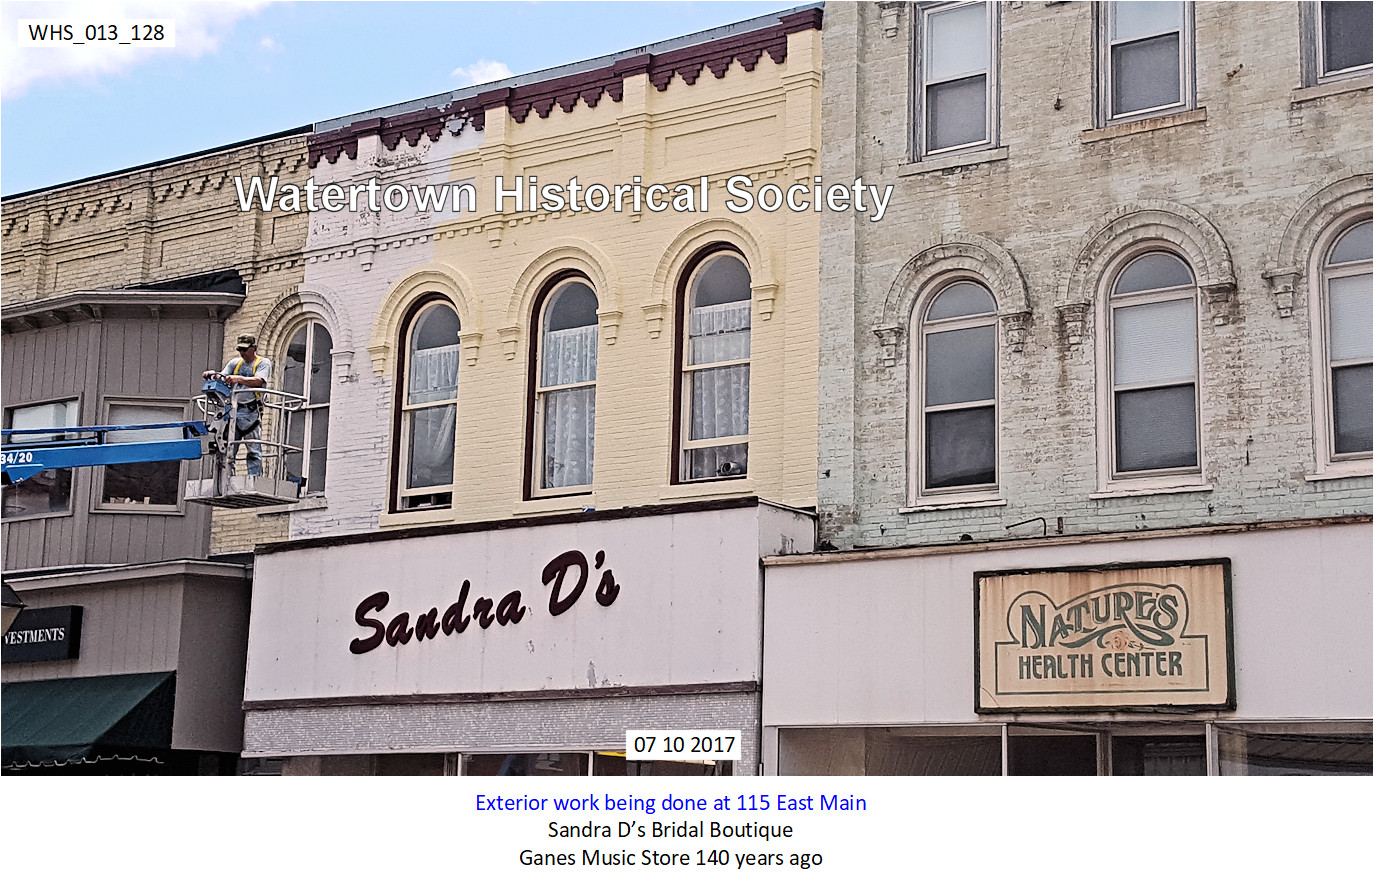 sandra d s bridal boutique 2017 115 e main exterior work whs 013 128